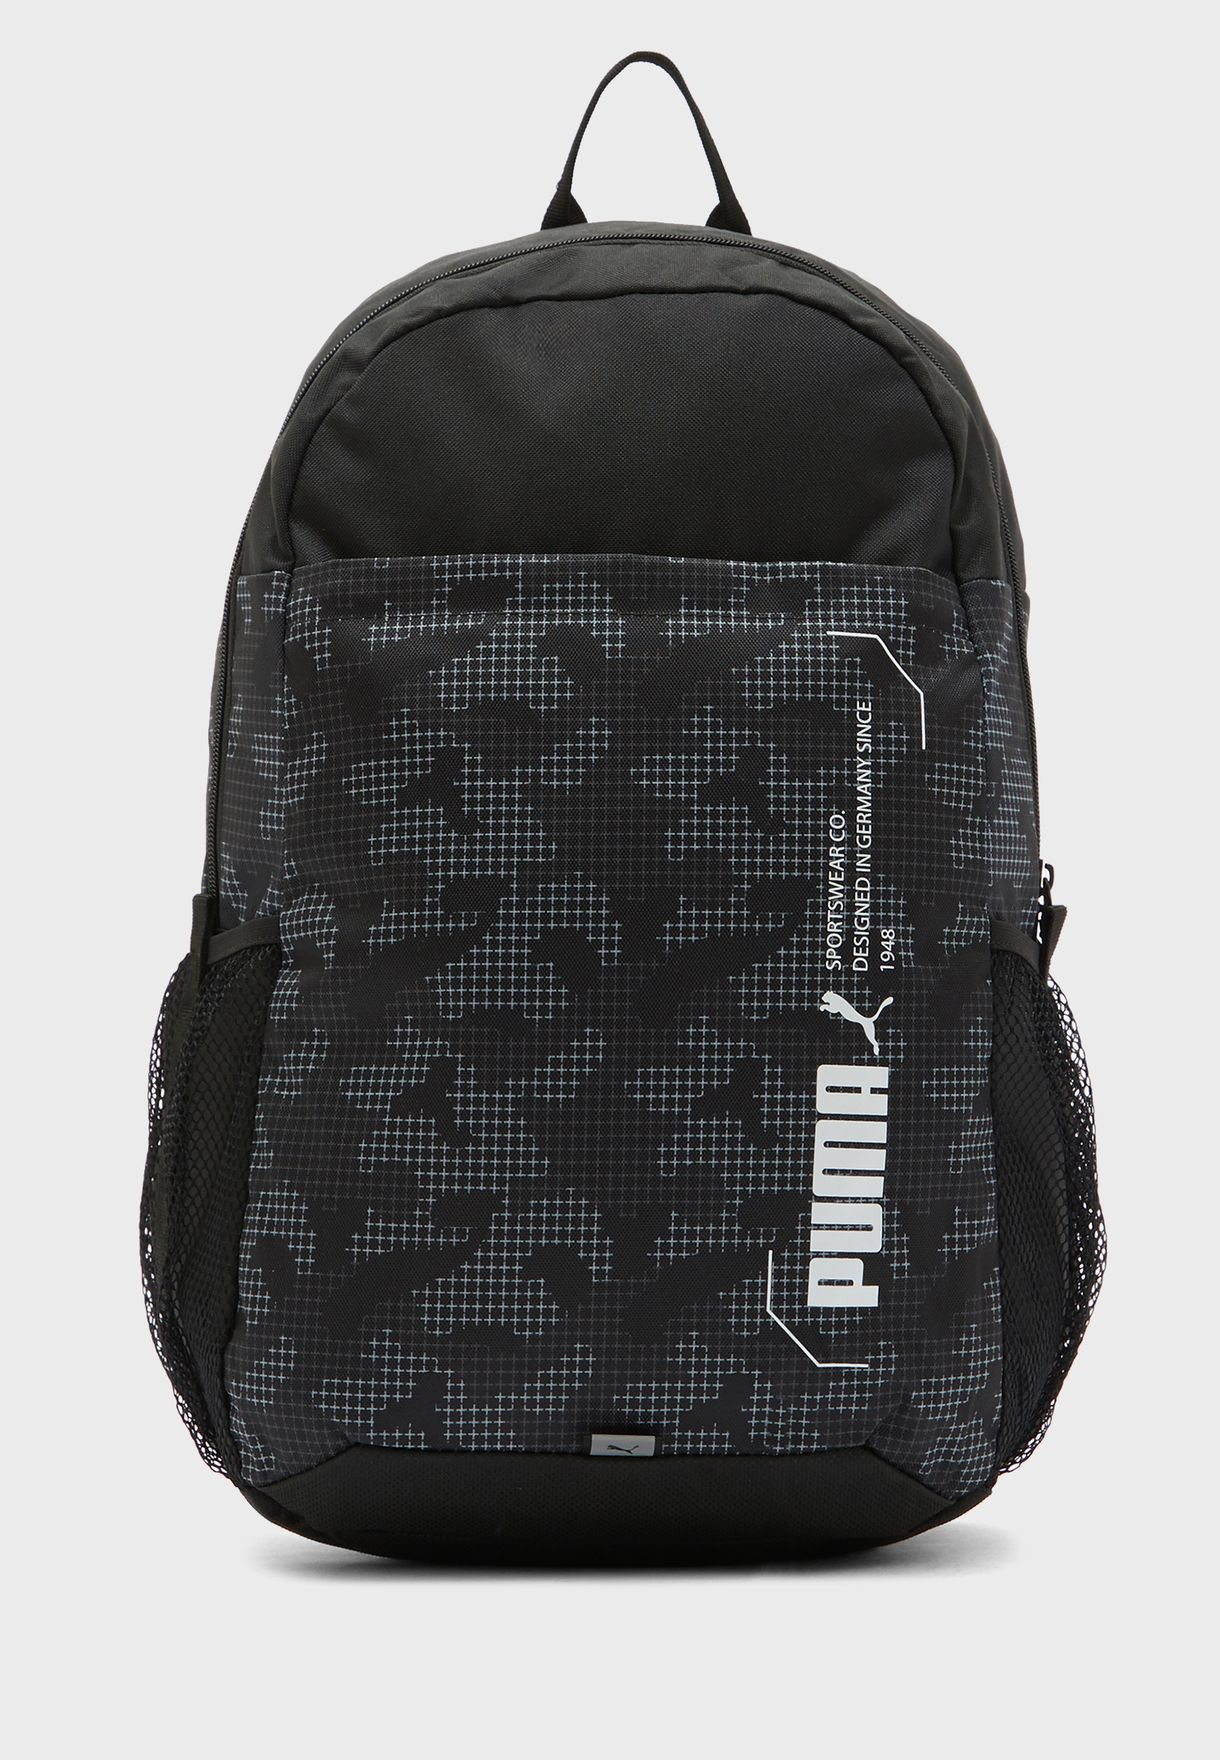 Style Graphic Backpack